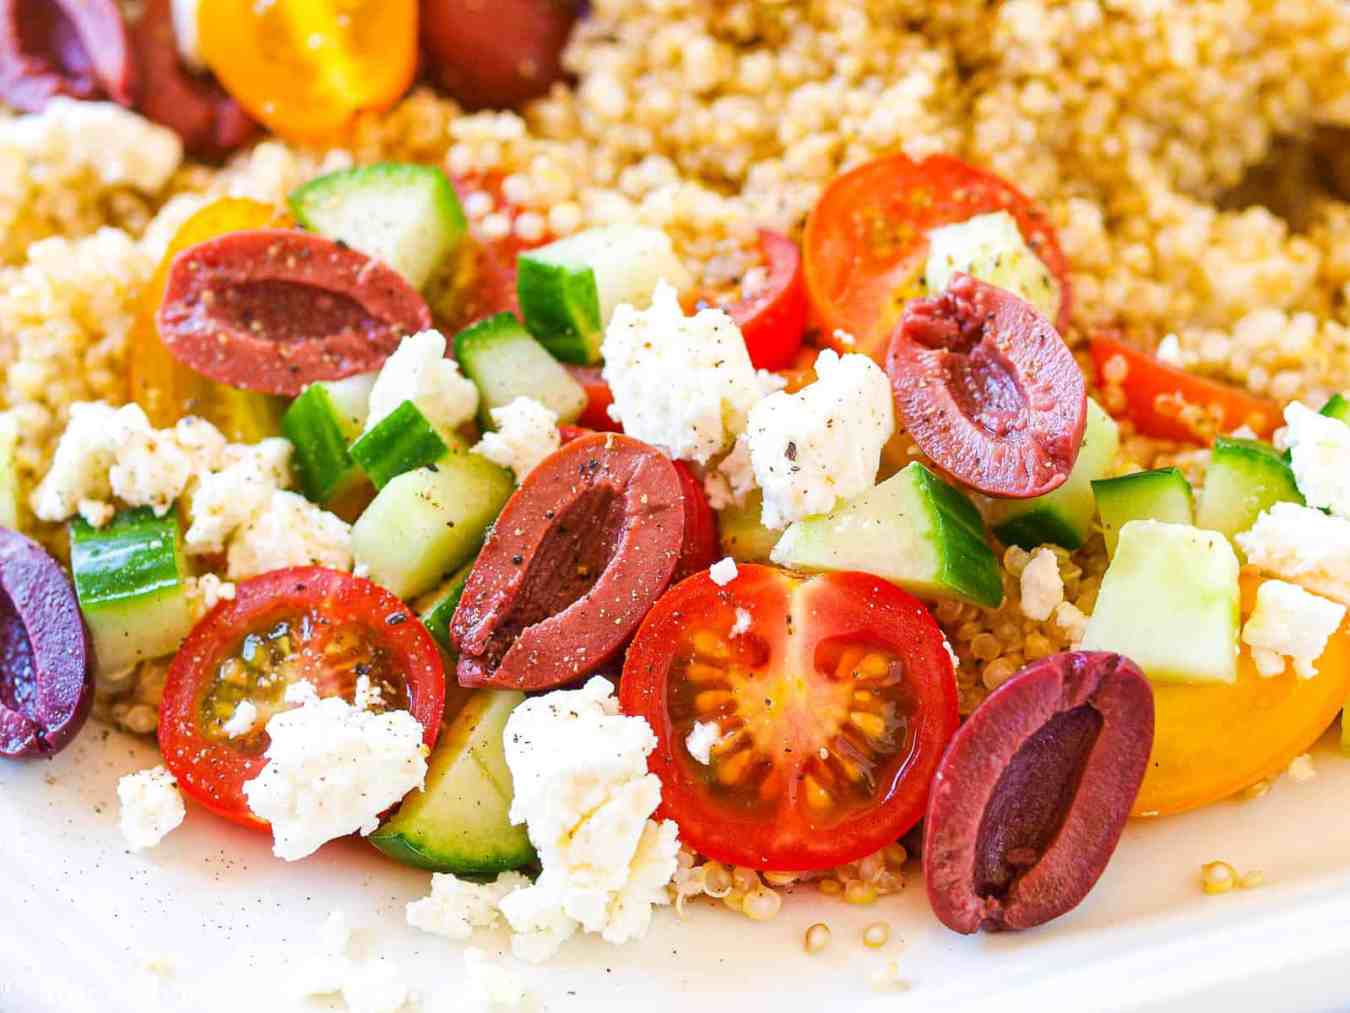 An upclose shot of the olives, tomatoes, cucumbers, sweet peppers, and feta over quinoa